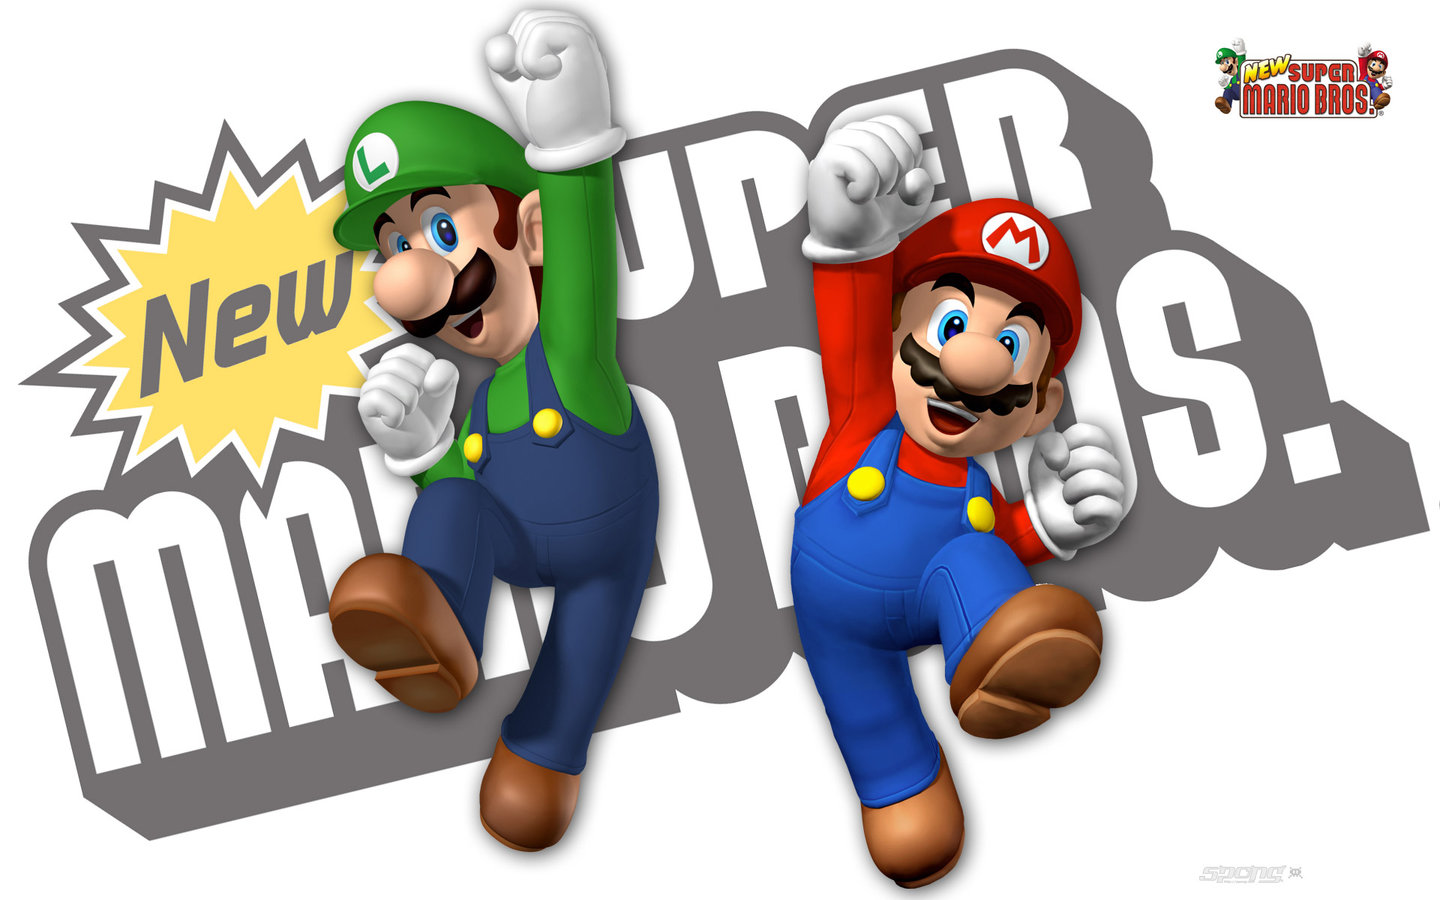 Wallpapers New Super Mario Bros Ds Dsi 1 Of 2